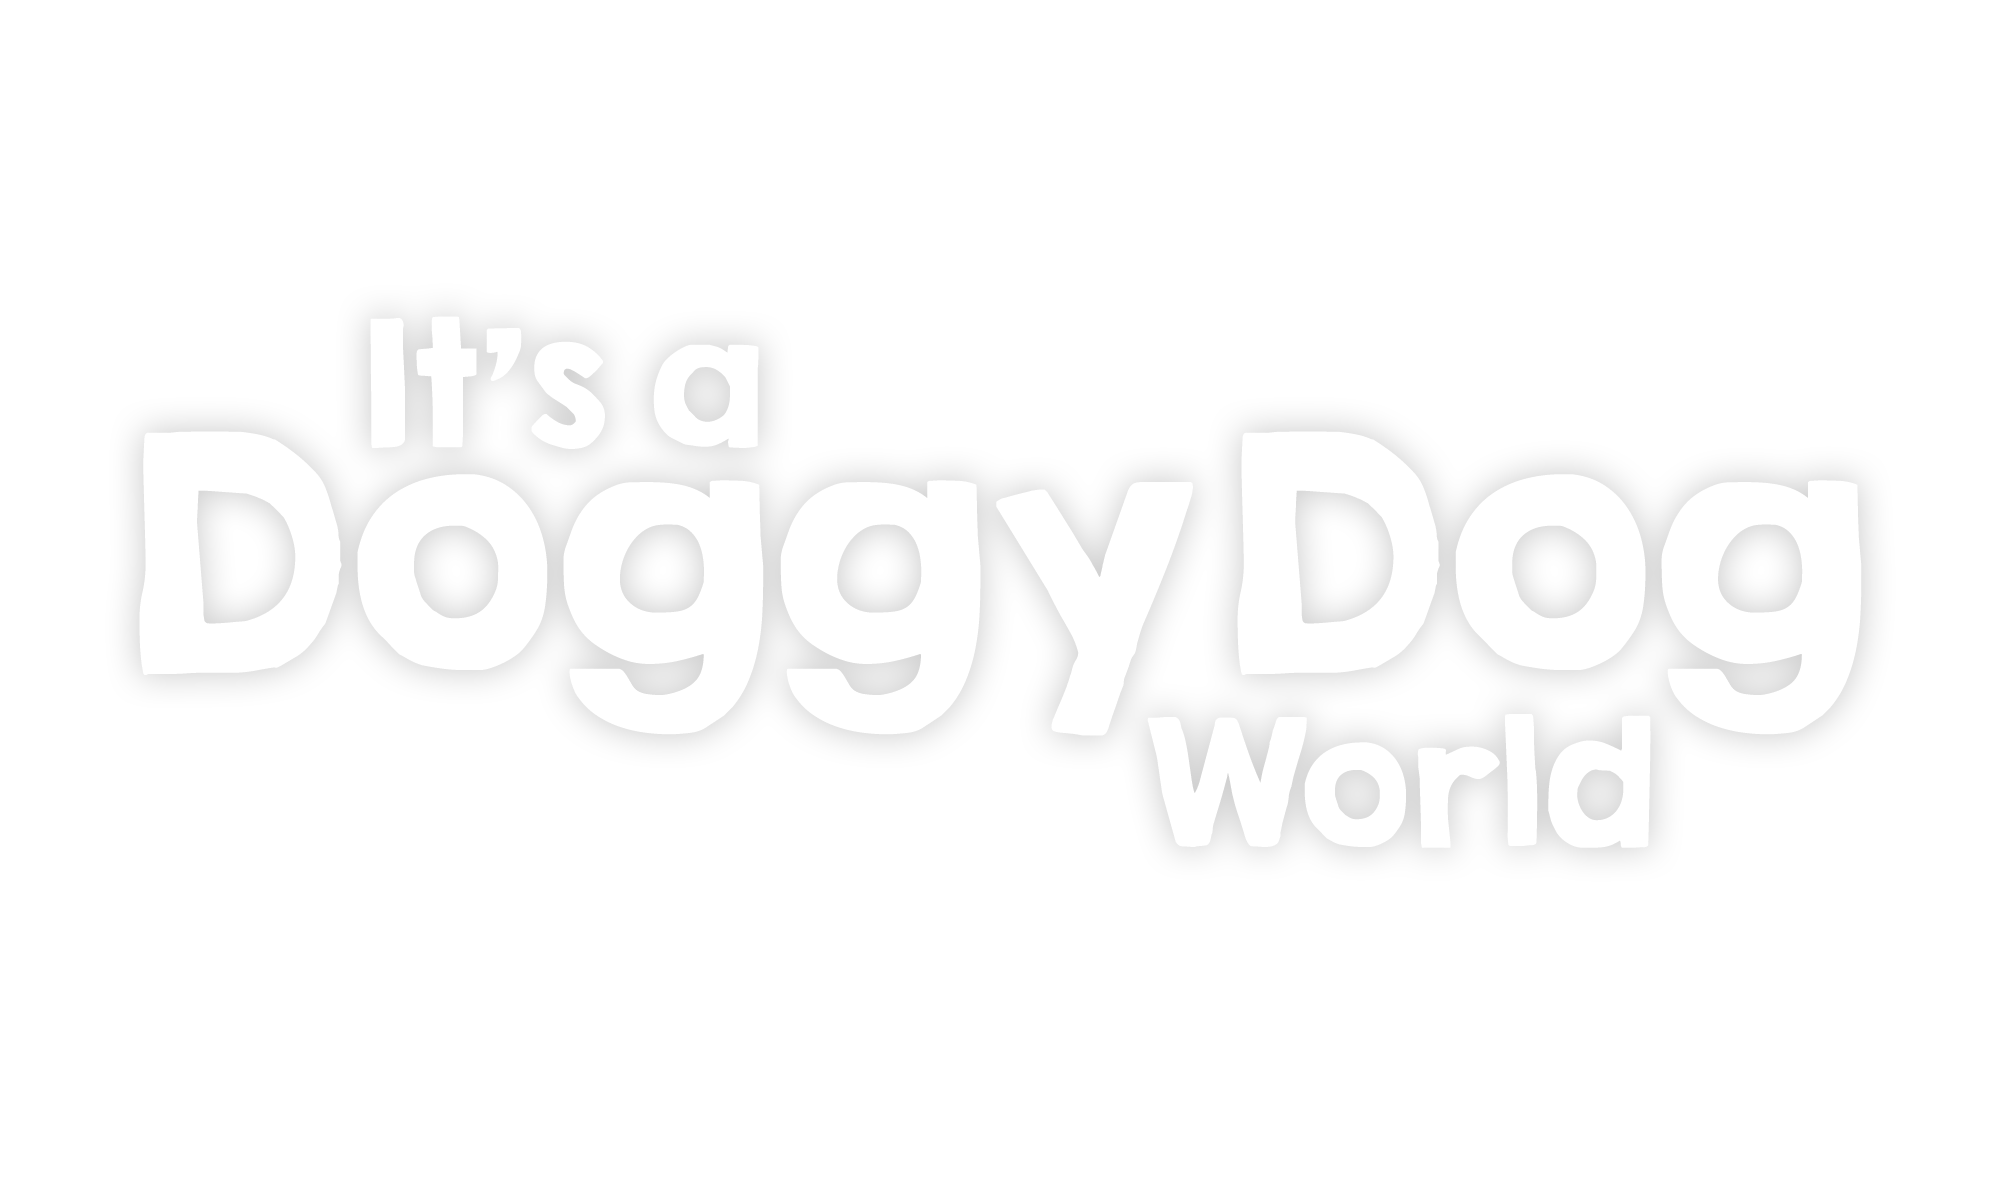 It's a Doggy Dog World